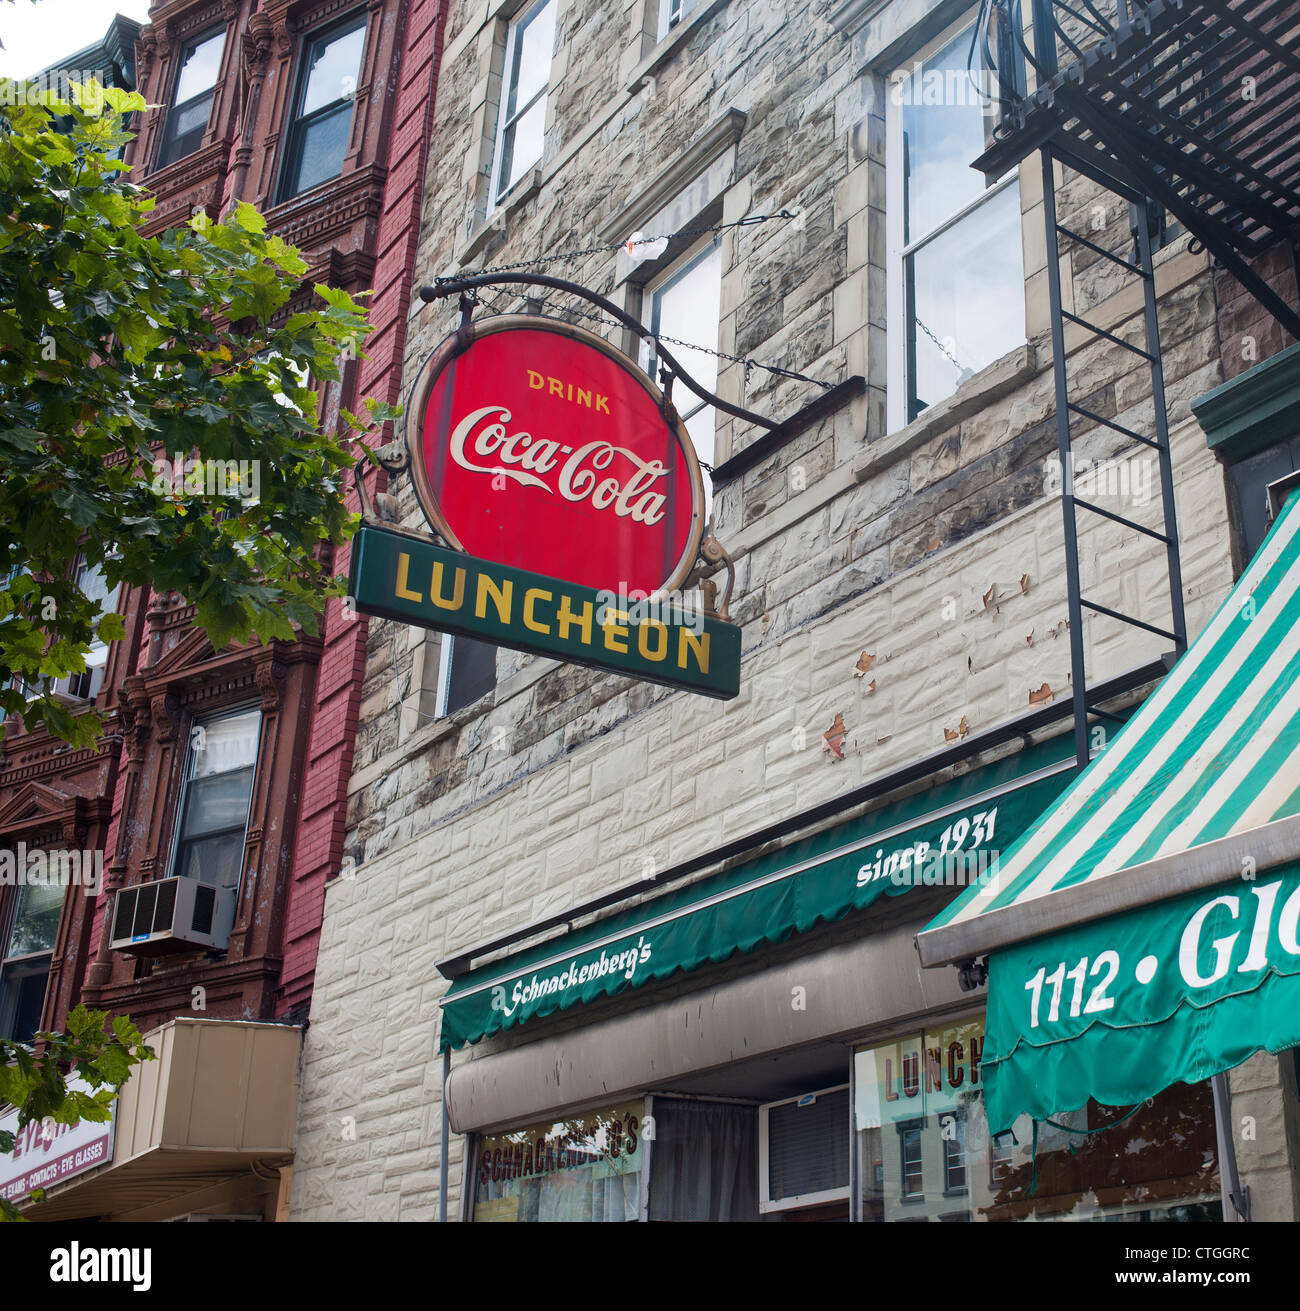 Luncheonette Stock Photos Amp Luncheonette Stock Images Alamy